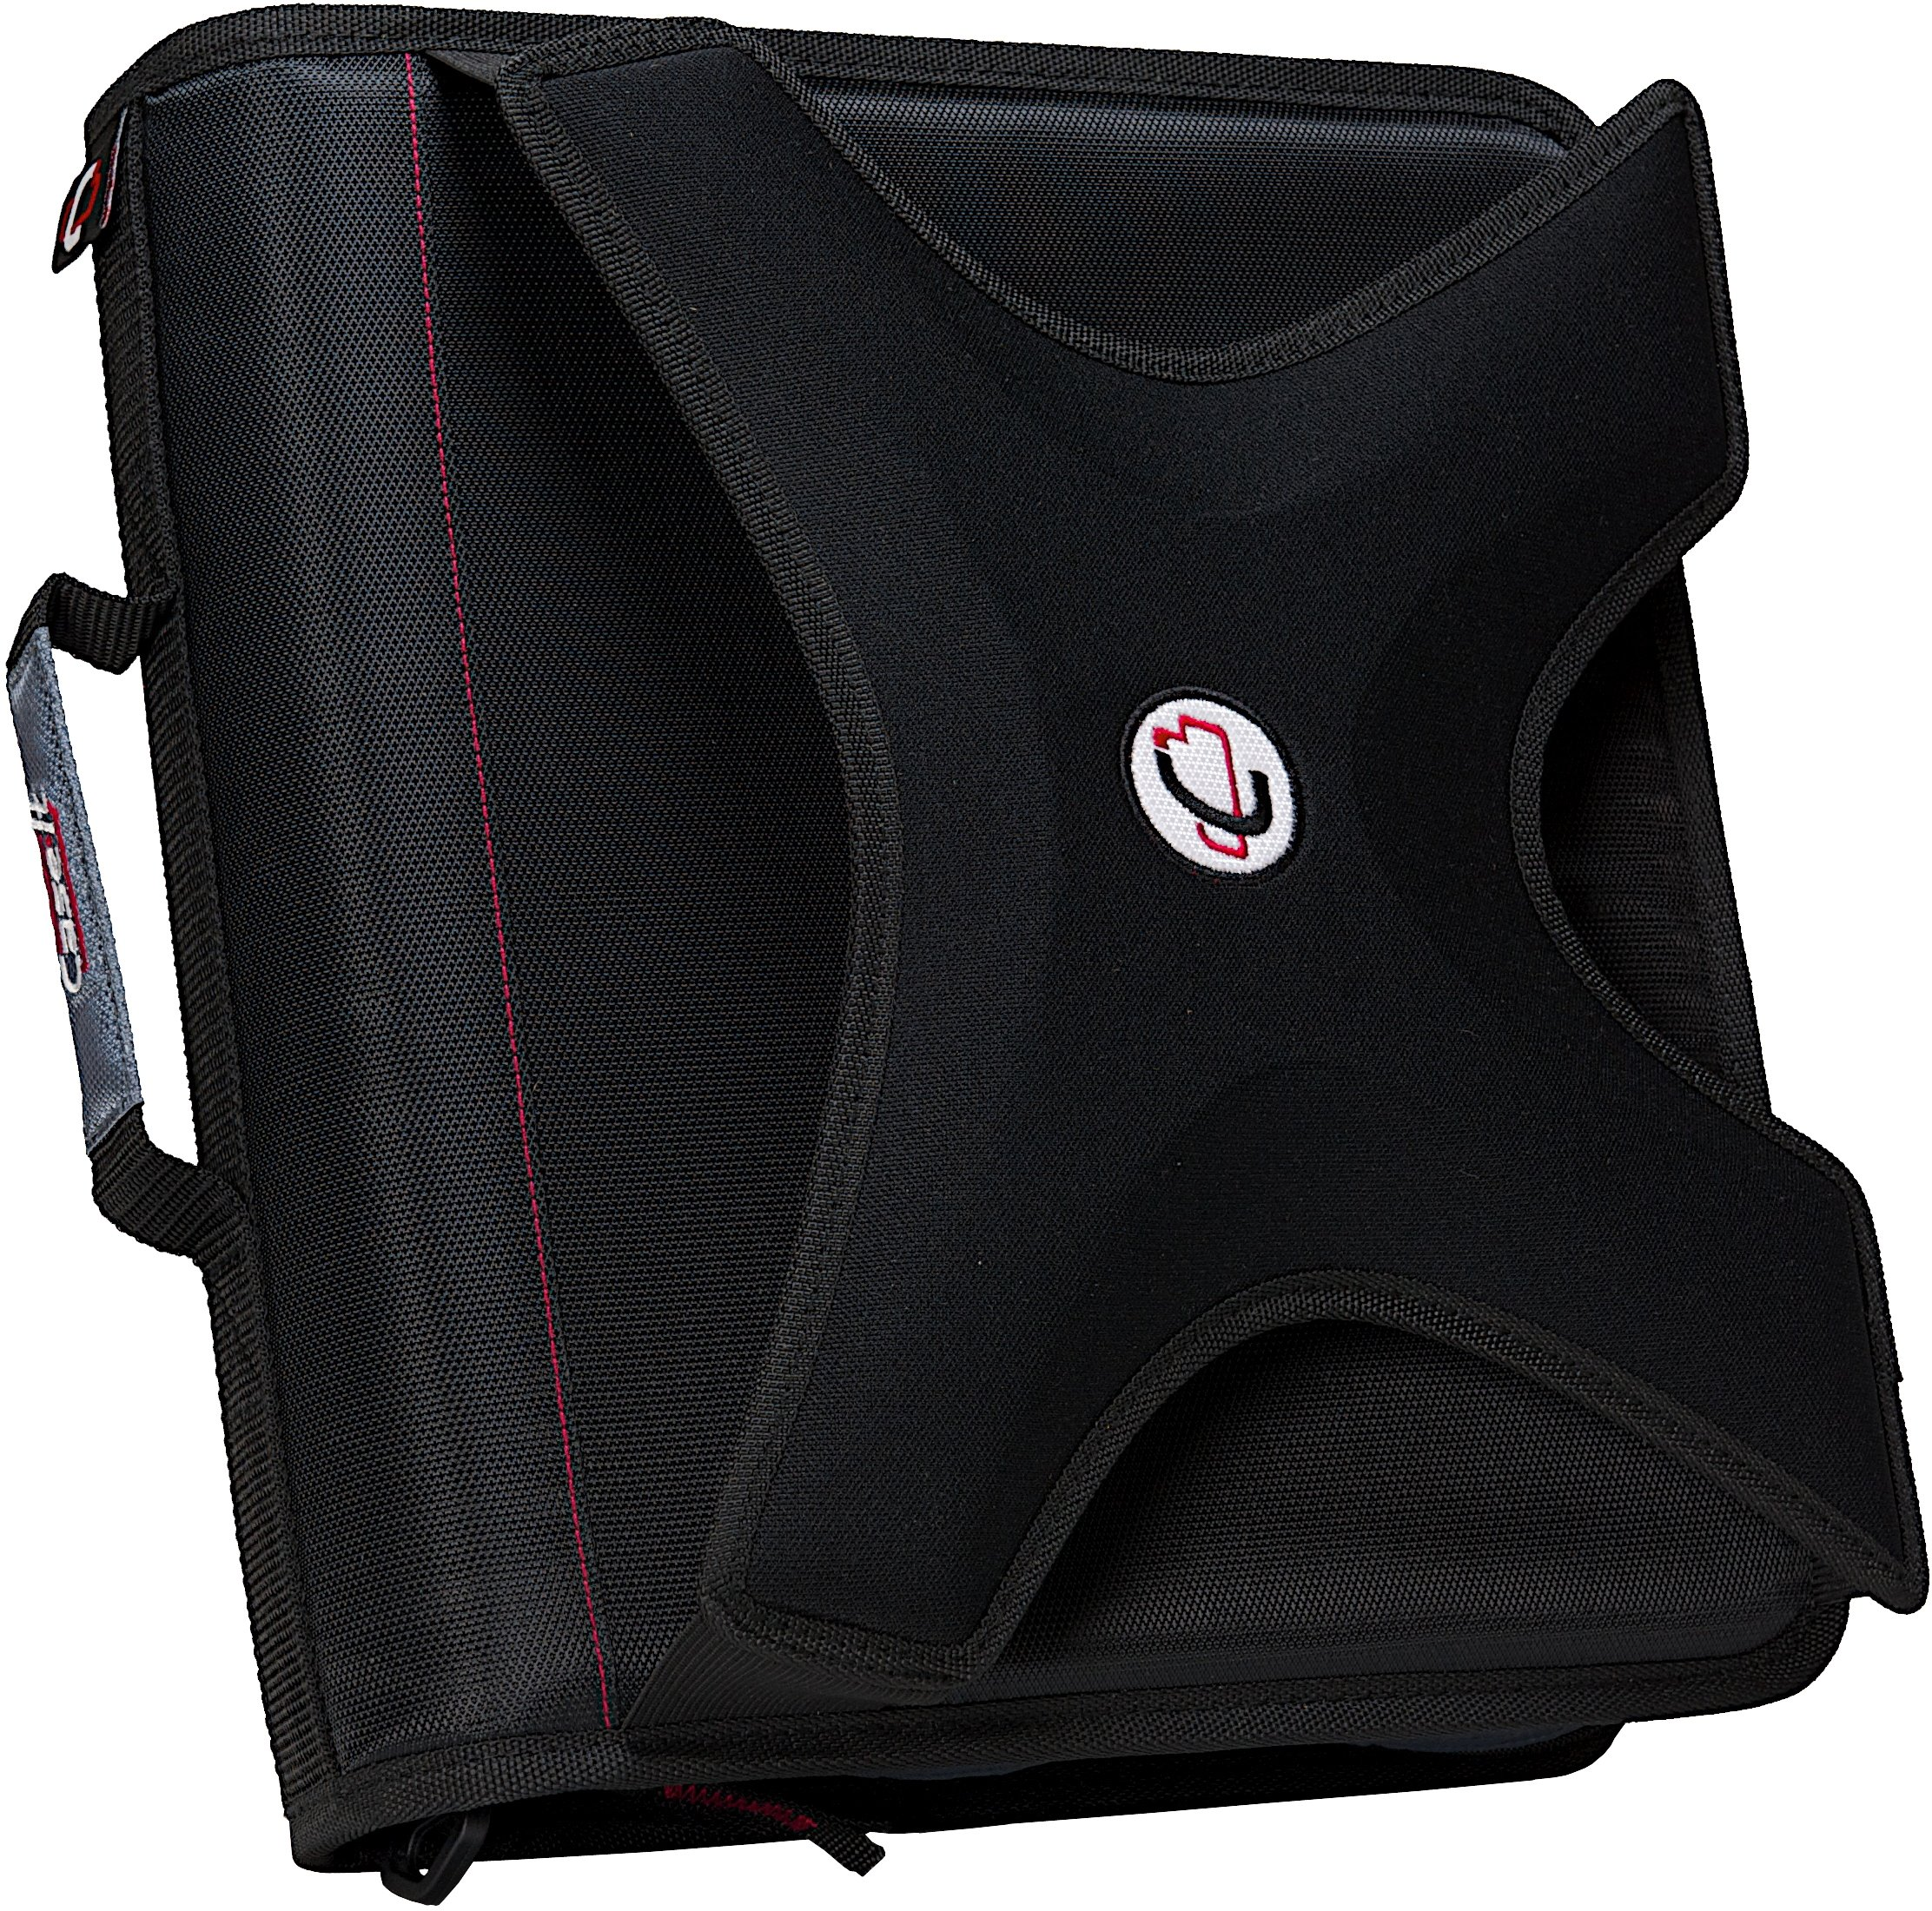 Case-it X-Hugger 2-Inch Round Ring Zipper Binder with Book Holder on Front, Black, X-351-BLK